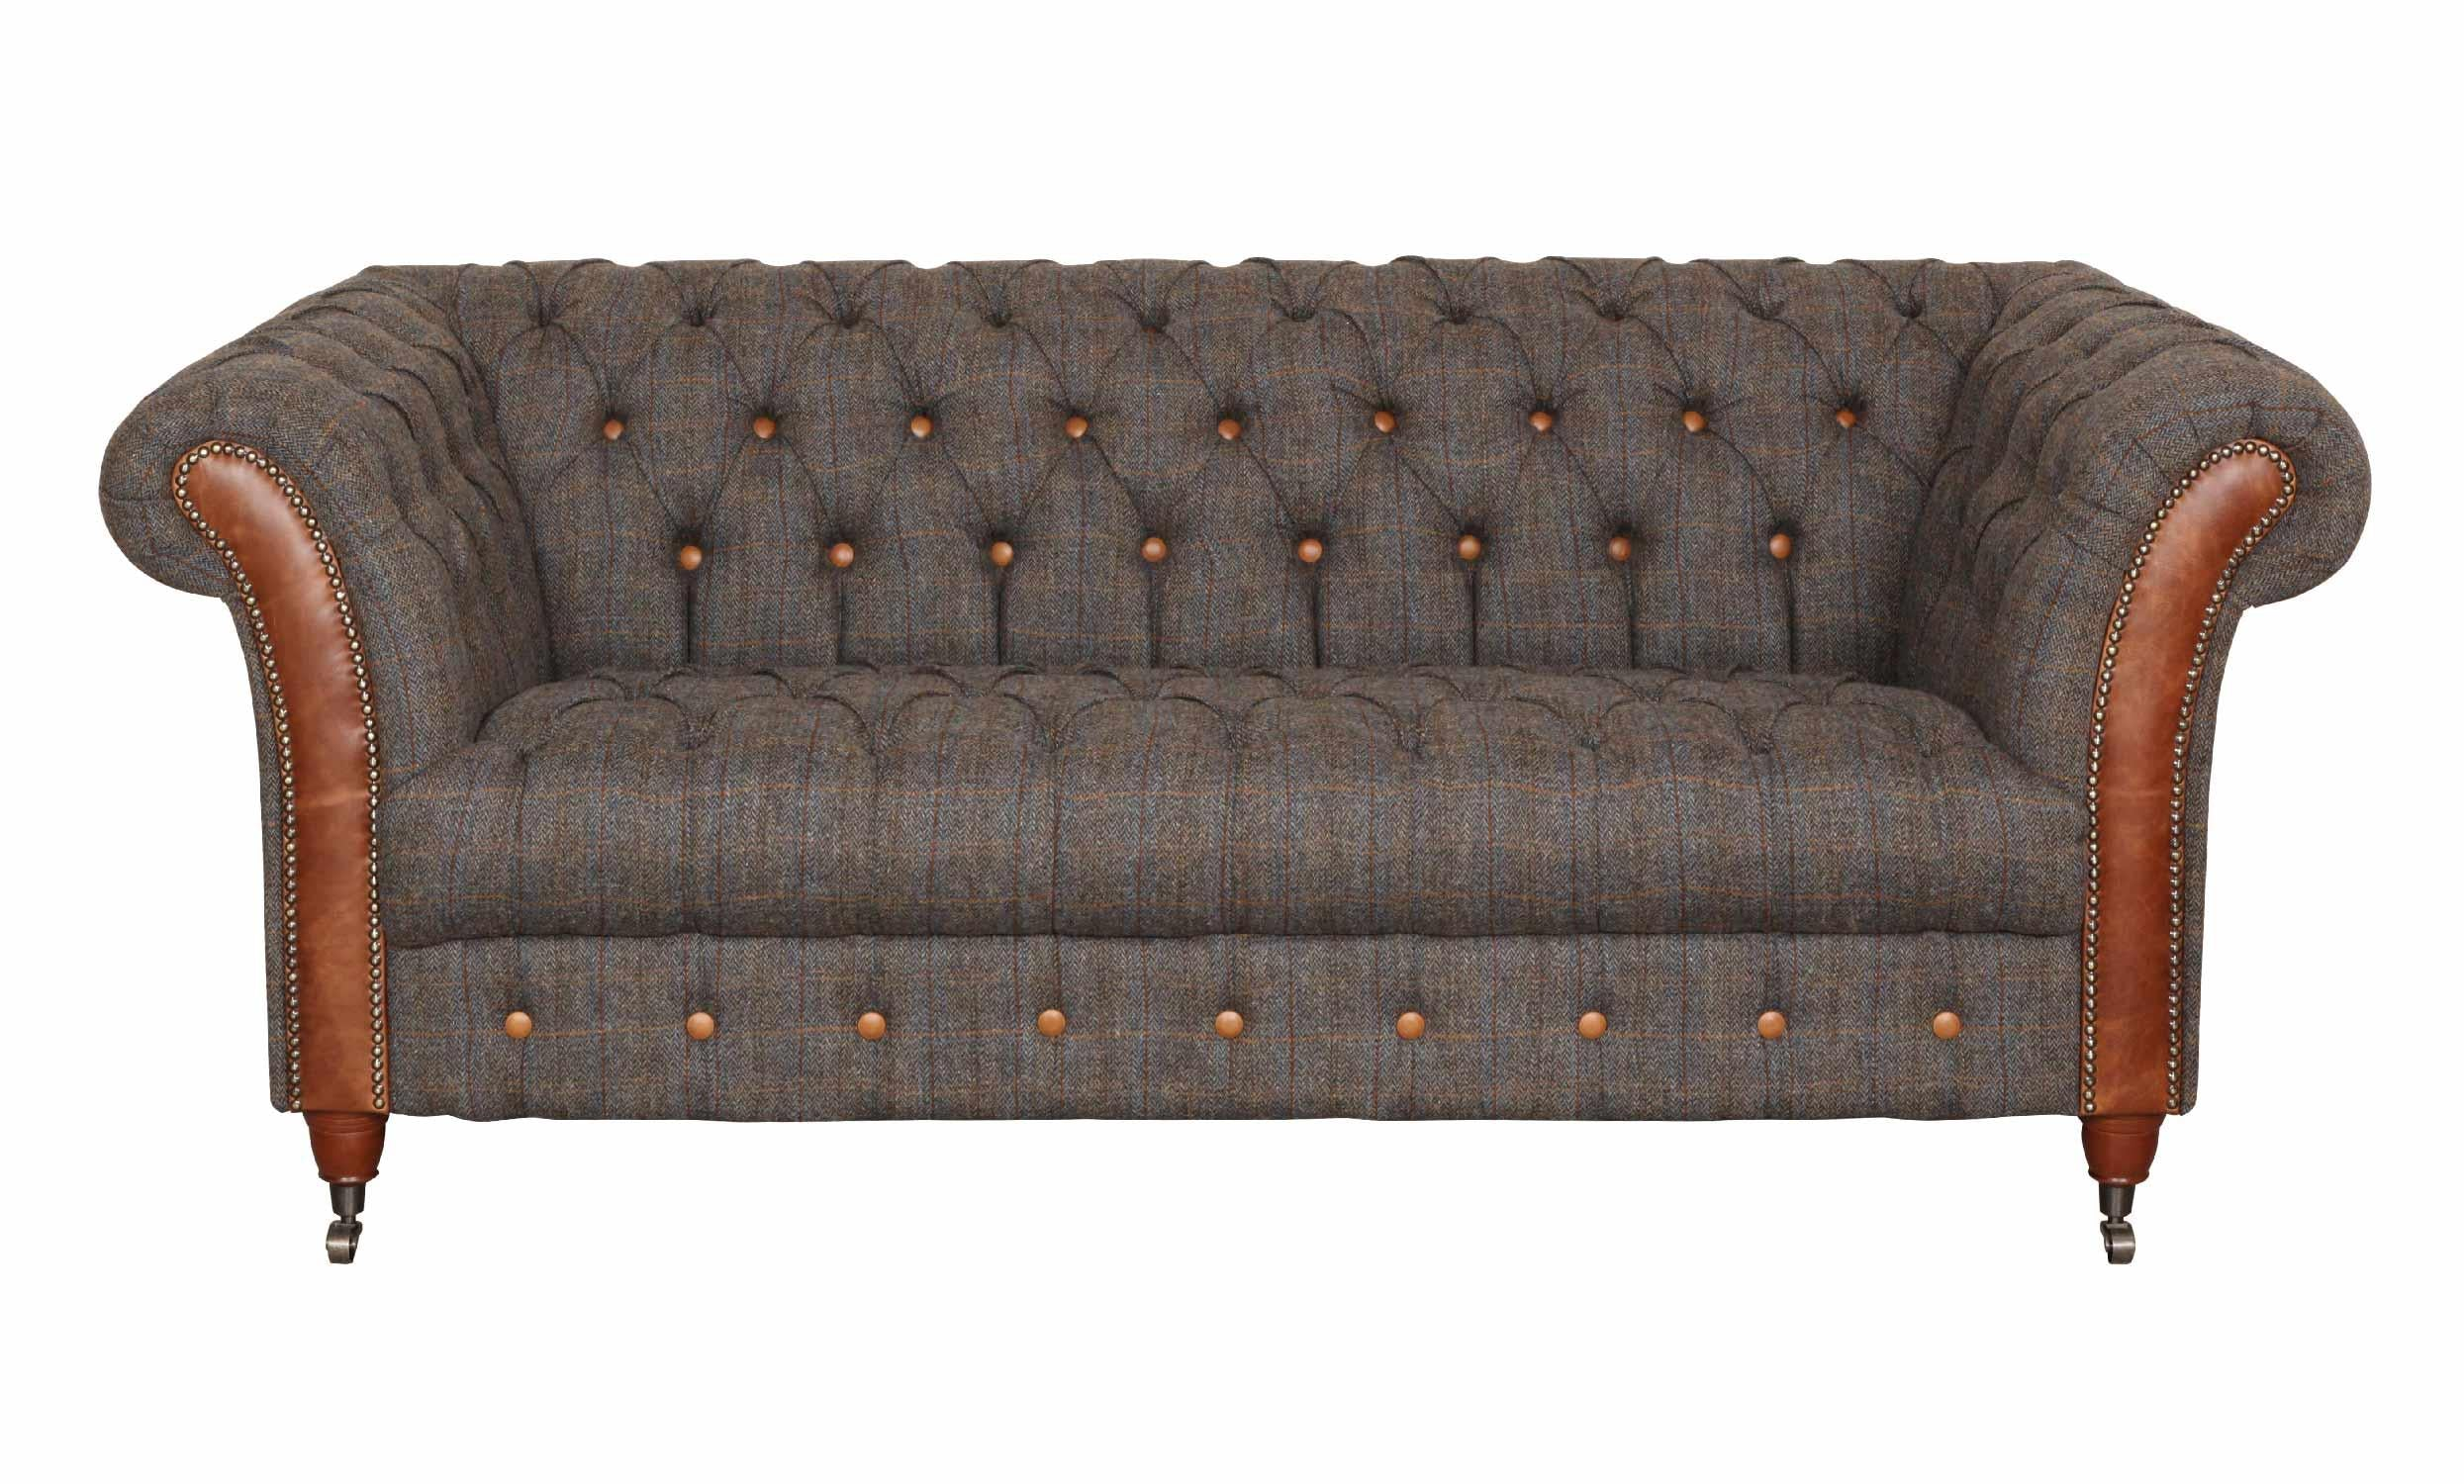 Chester Club Harris Tweed and Leather Sofas and Chair.-harris tweed sofas-Against The Grain Furniture-2 Seater-Against The Grain Furniture